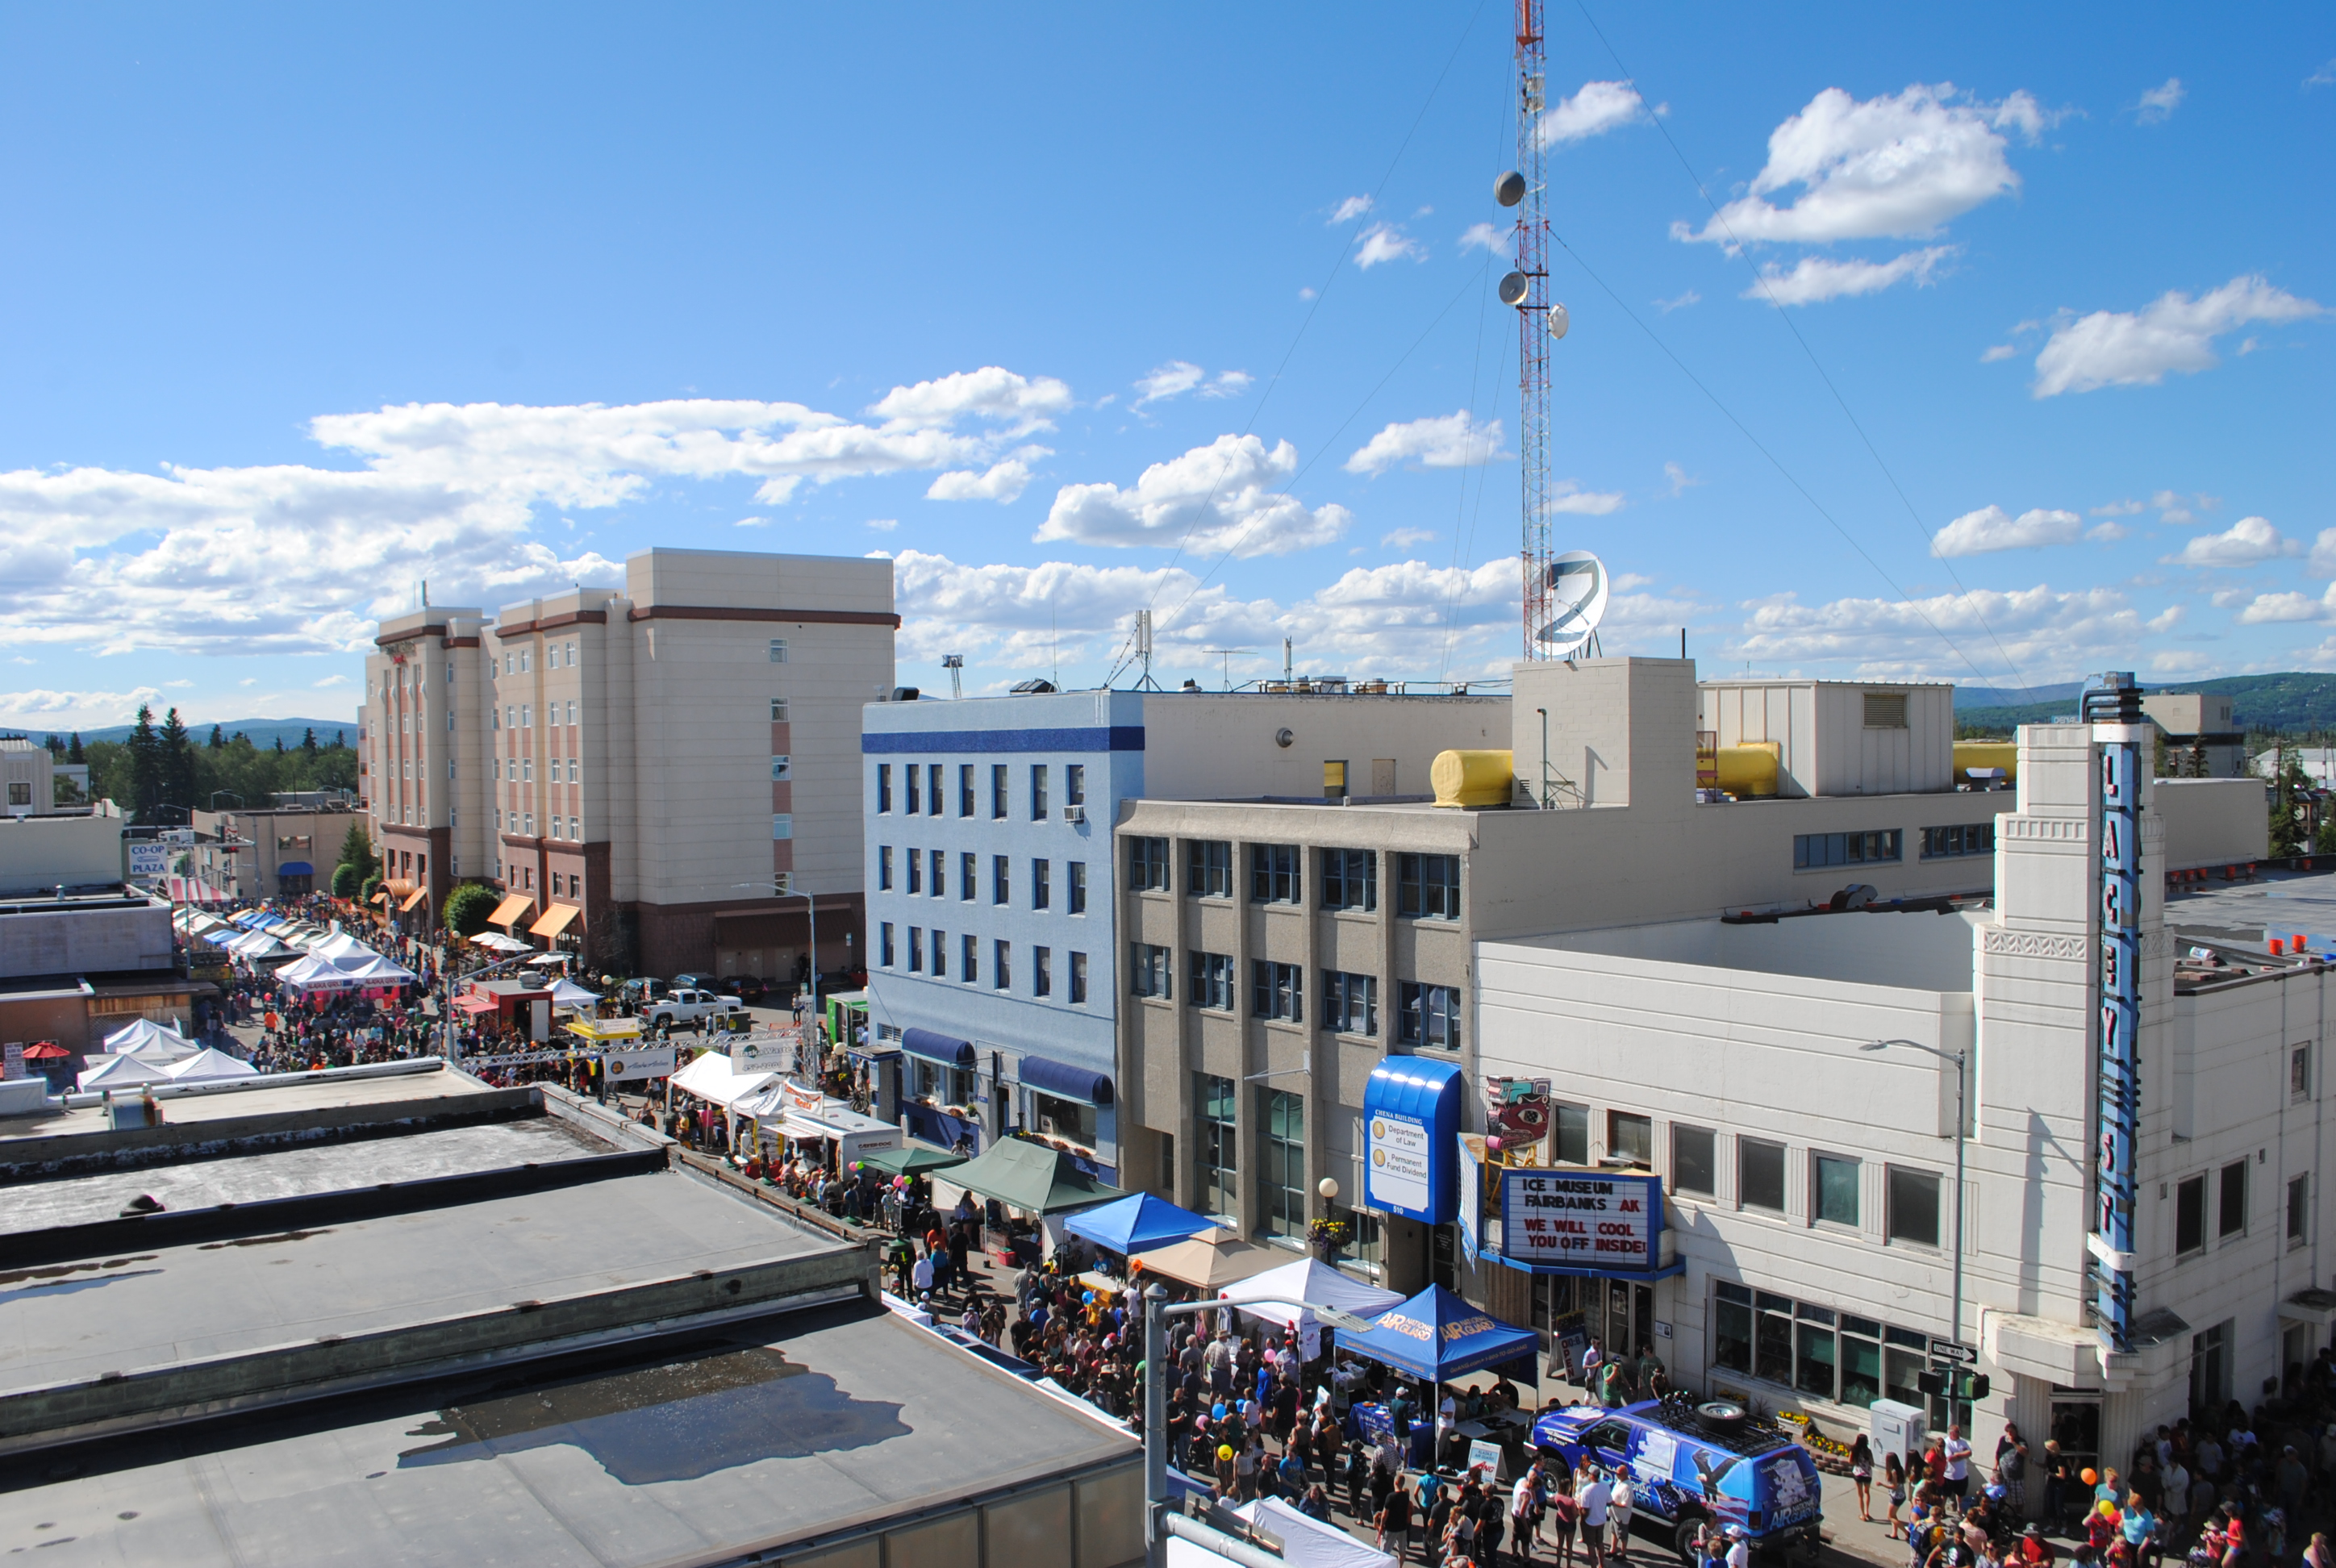 Downtown Fairbanks Alaska